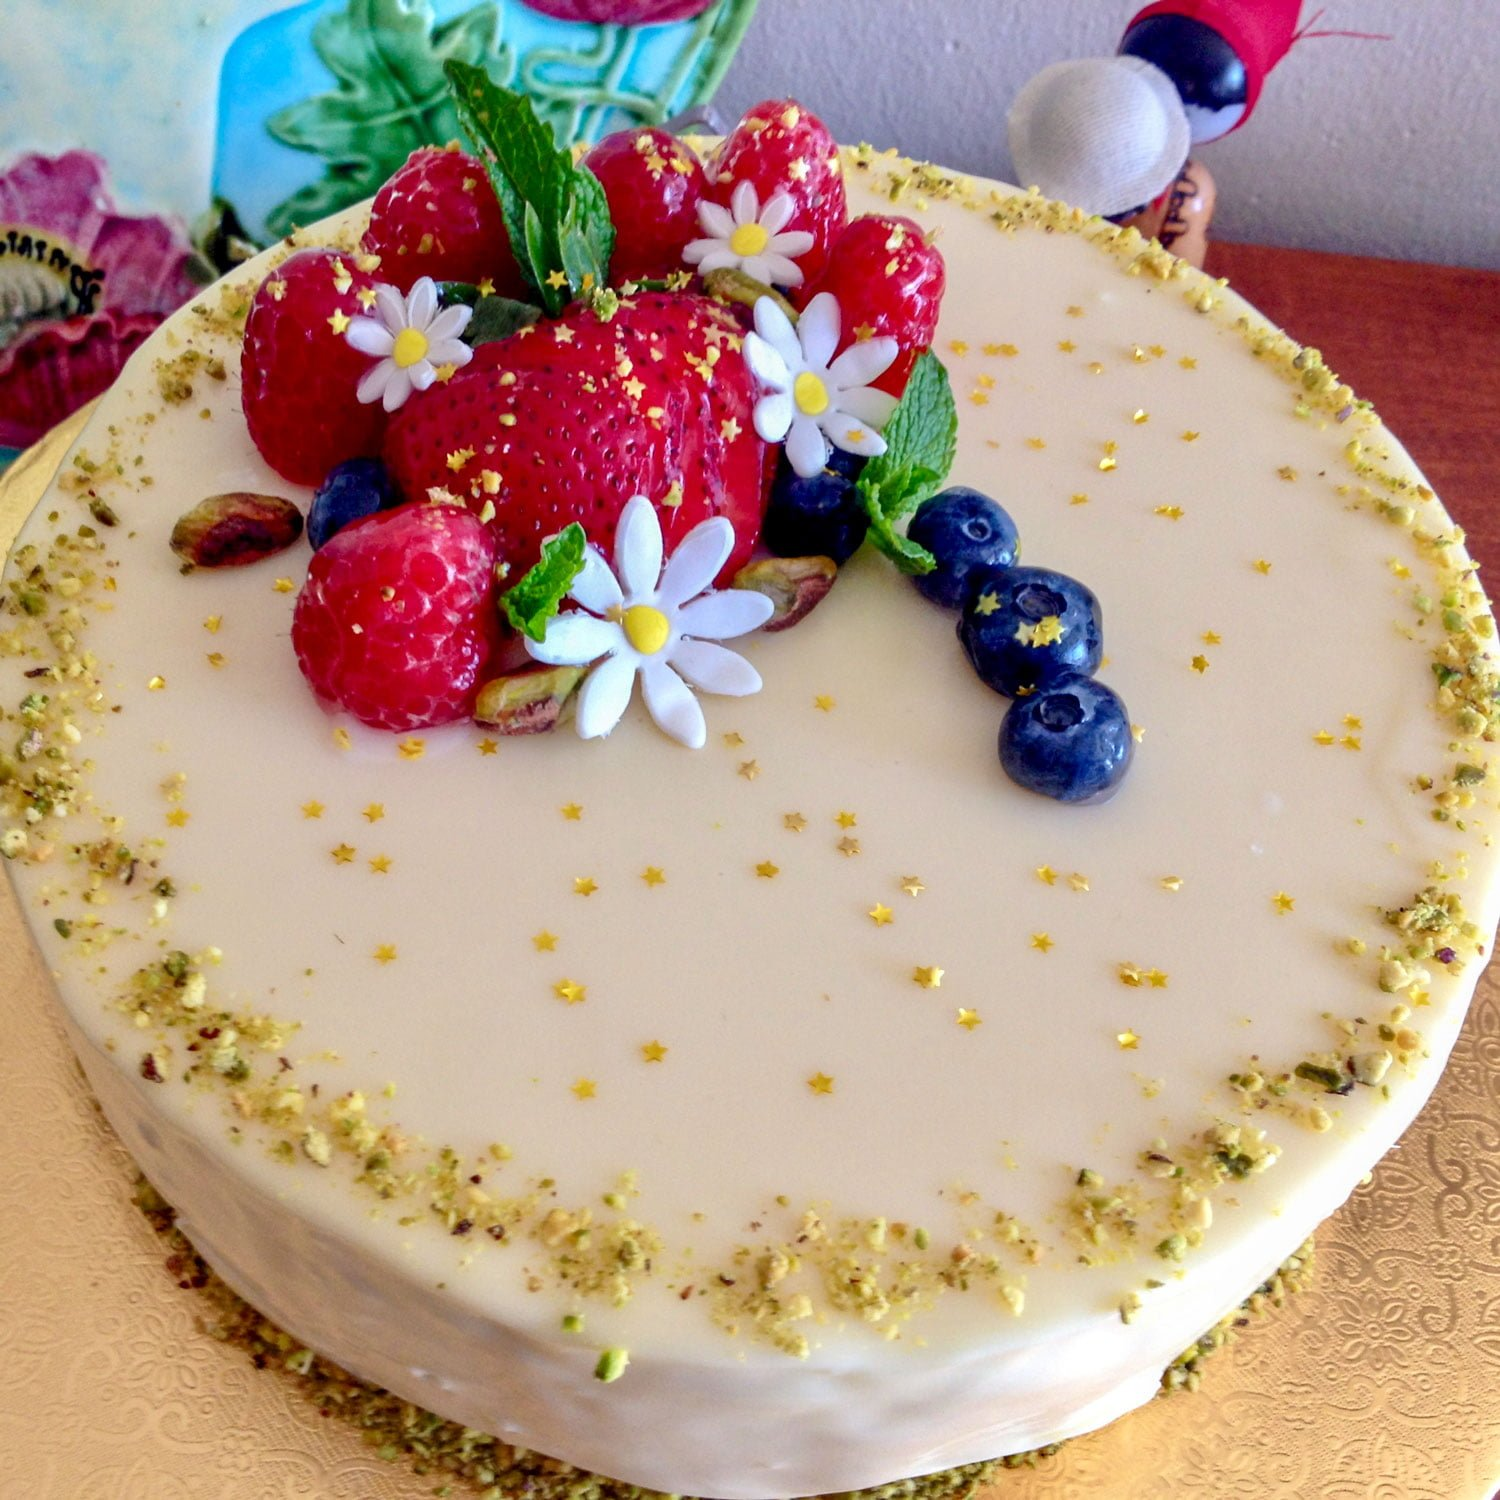 White Chocolate Hazelnuts Dacquoise Cake is a recipe of hazelnut Dacquoise cake with white chocolate mousse, a strawberry compote, pistachios, all covered in a white chocolate glaze, decorated with berries and edible gold sprinkles.